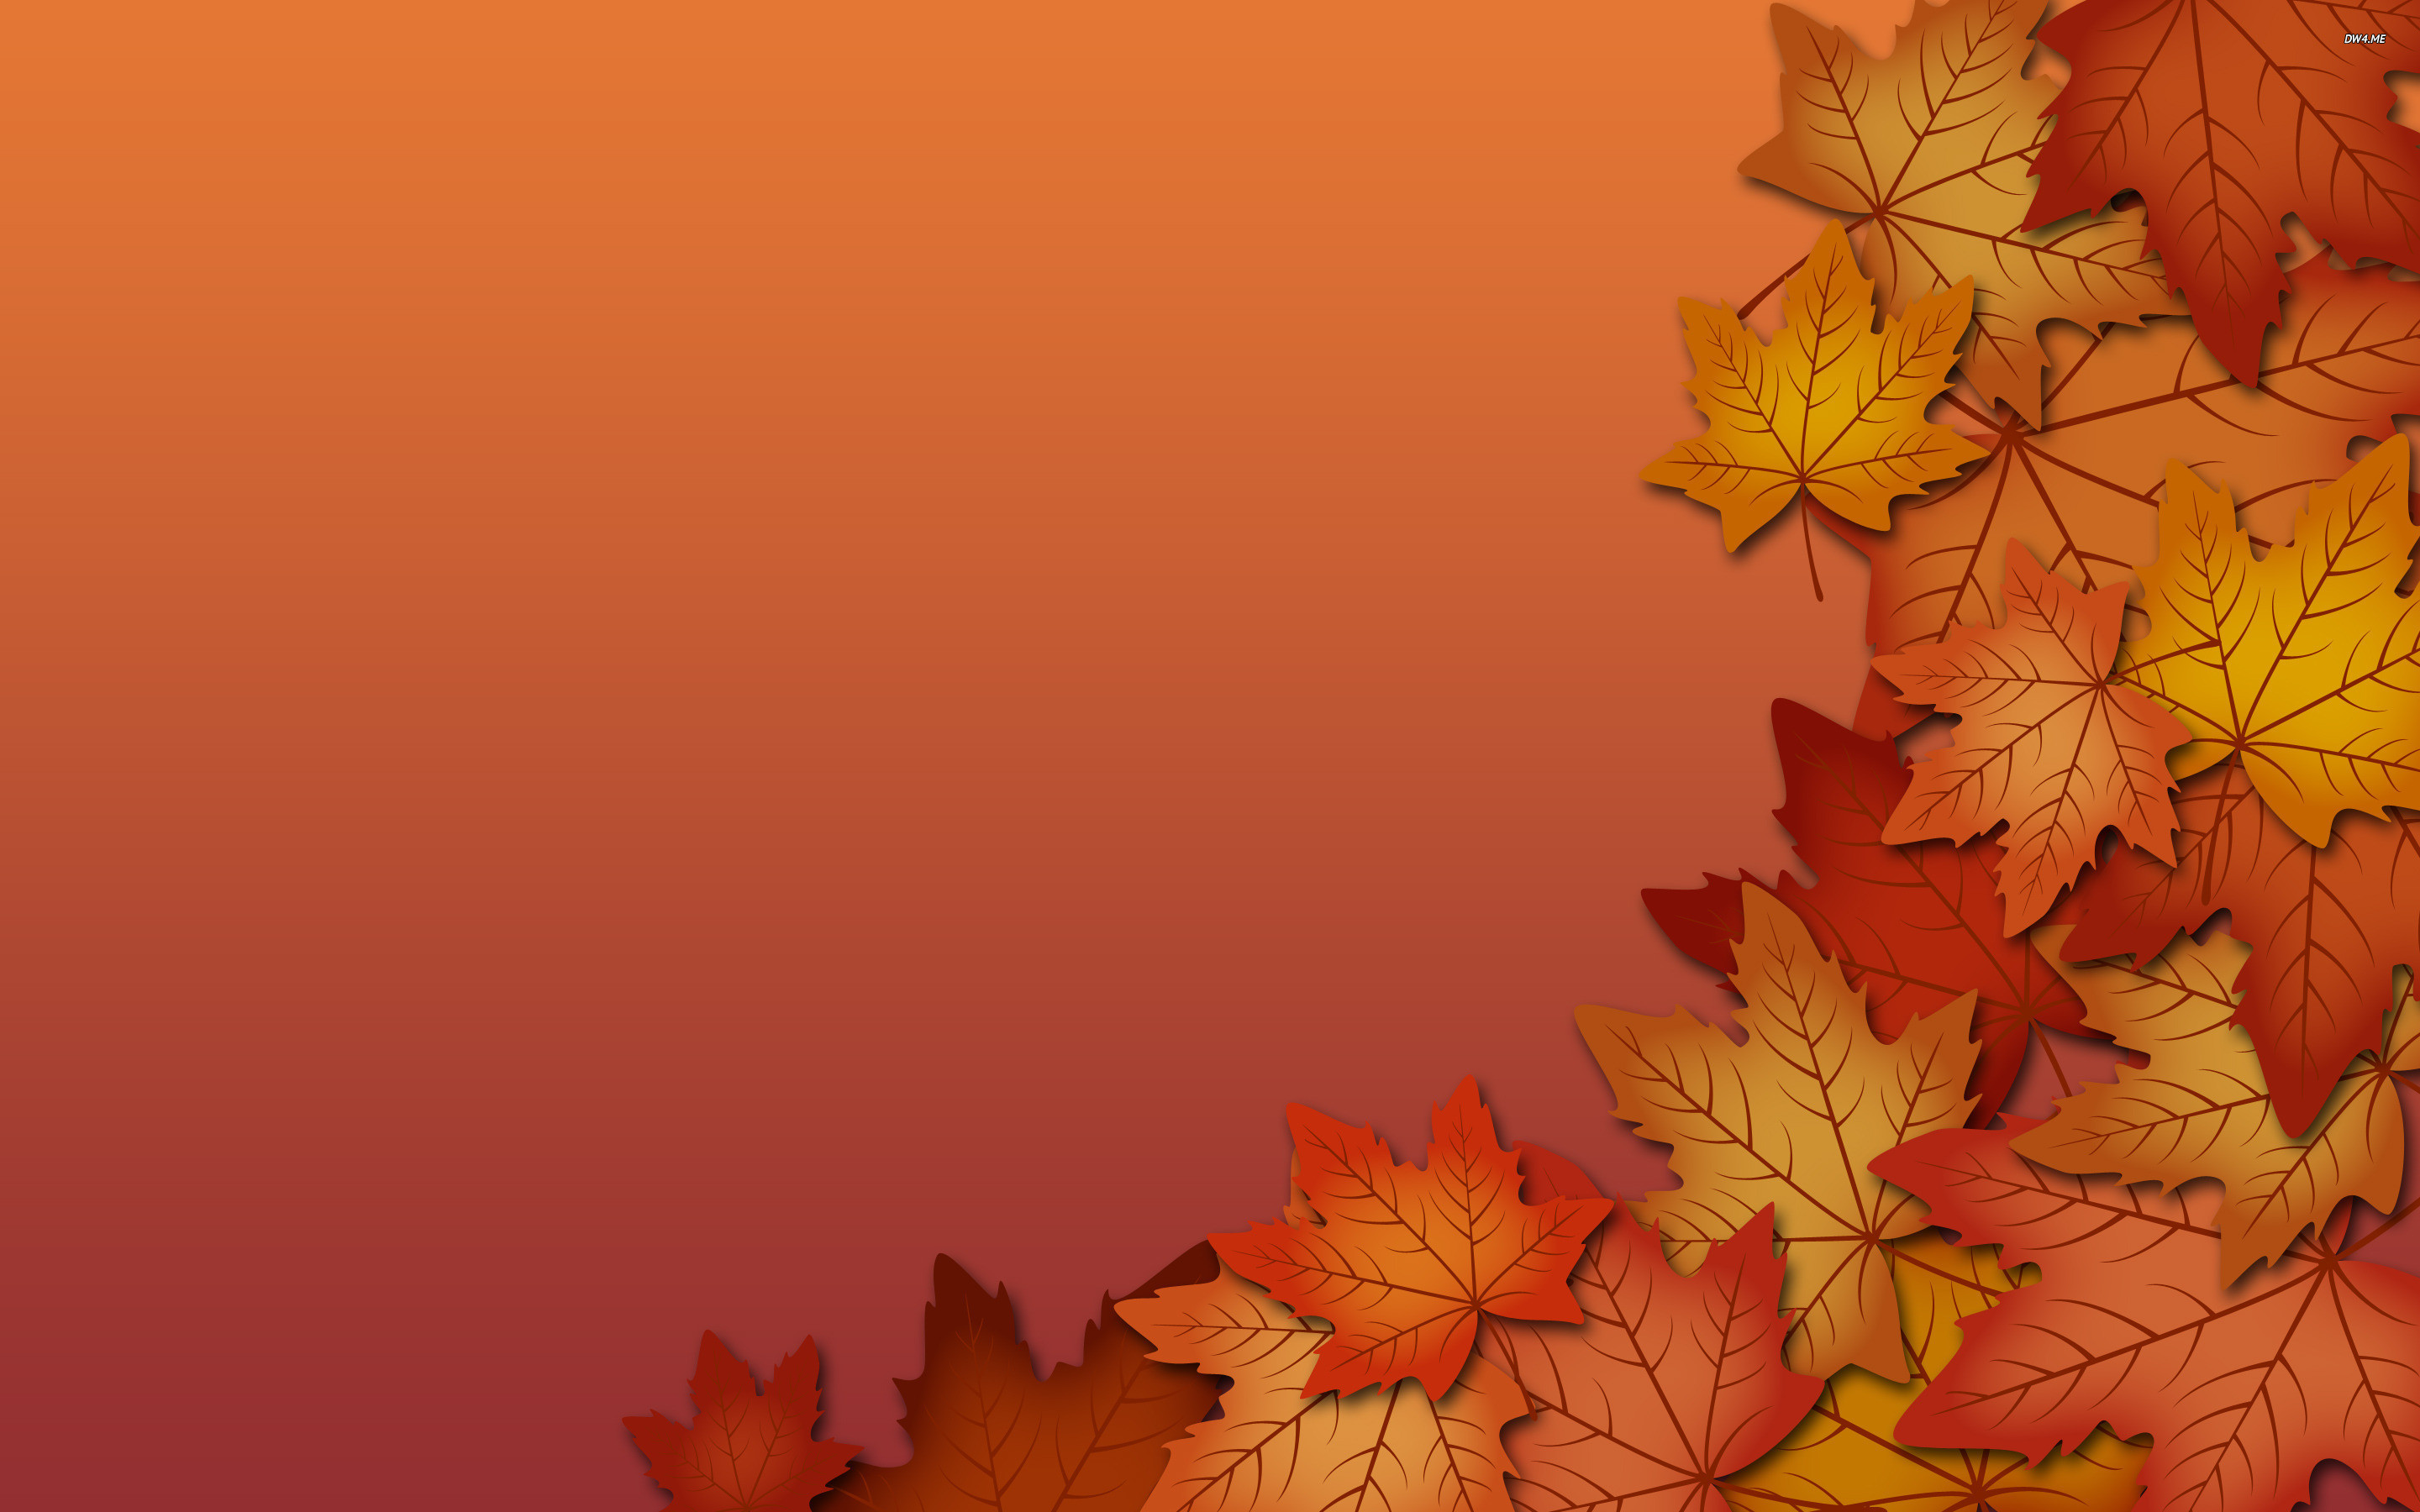 Res: 2880x1800, Fall Leaves Wallpapers High Resolution